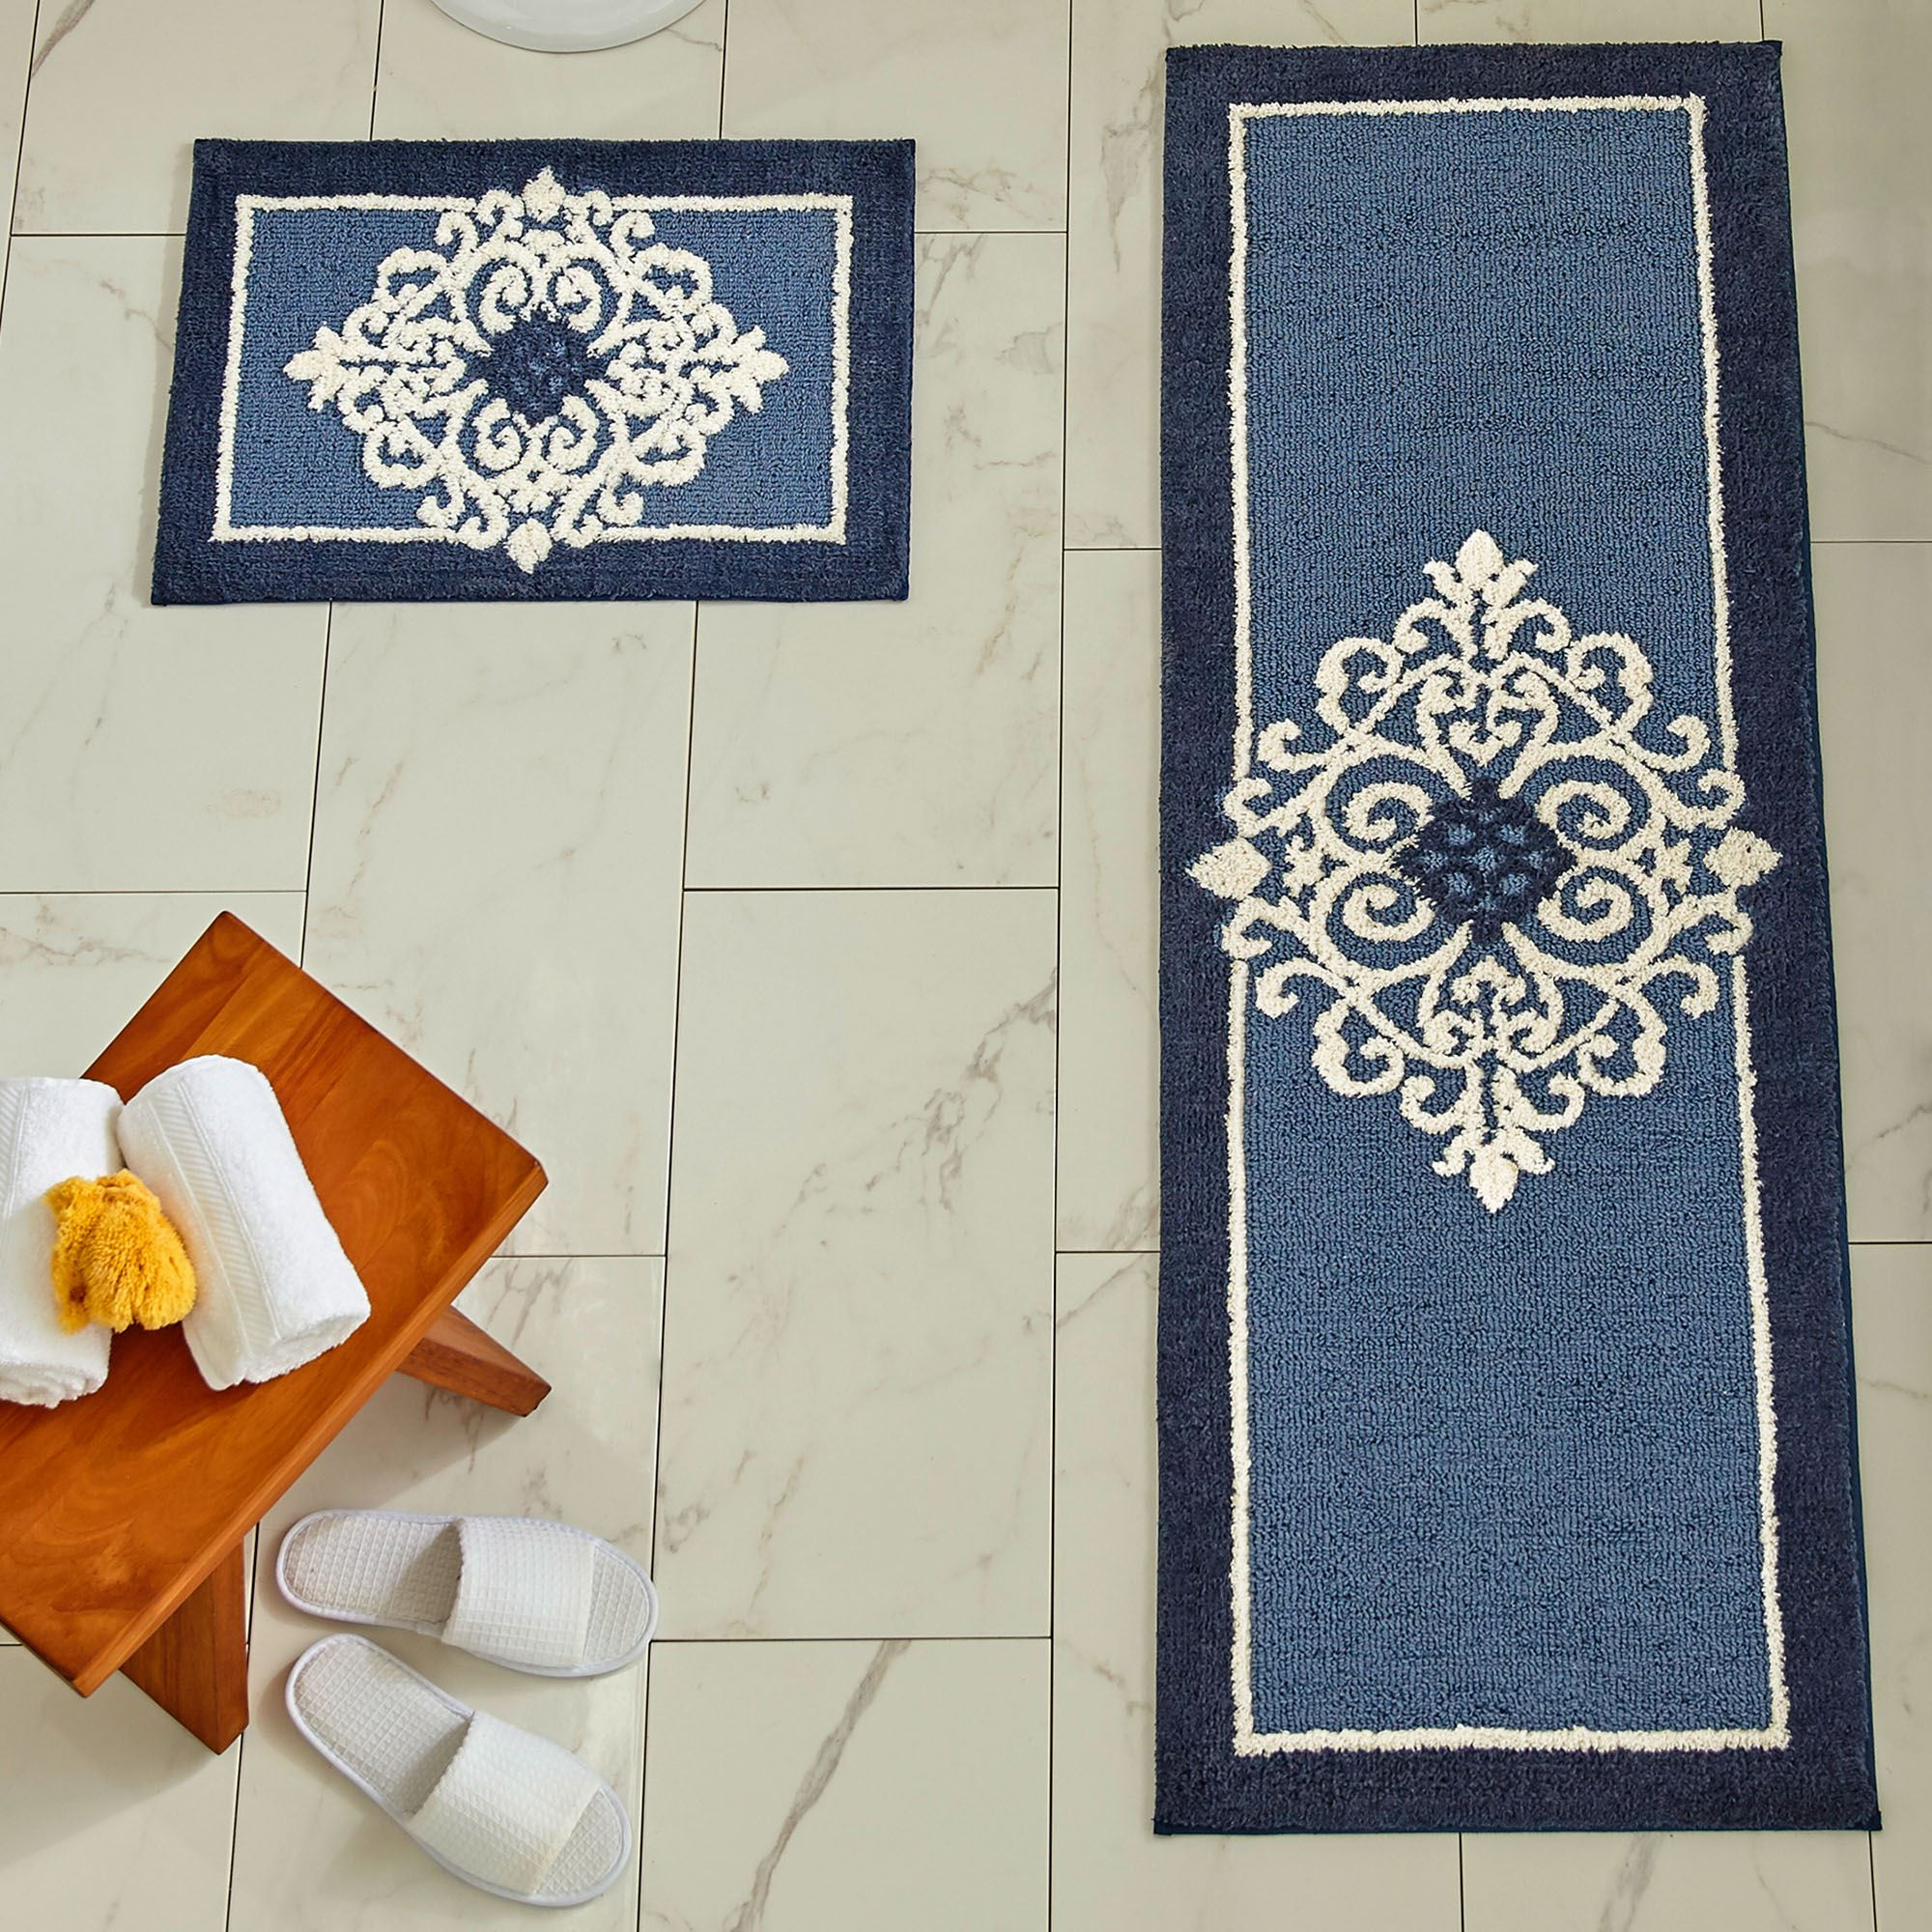 Griffin Medallion Nonskid Bath Rugs